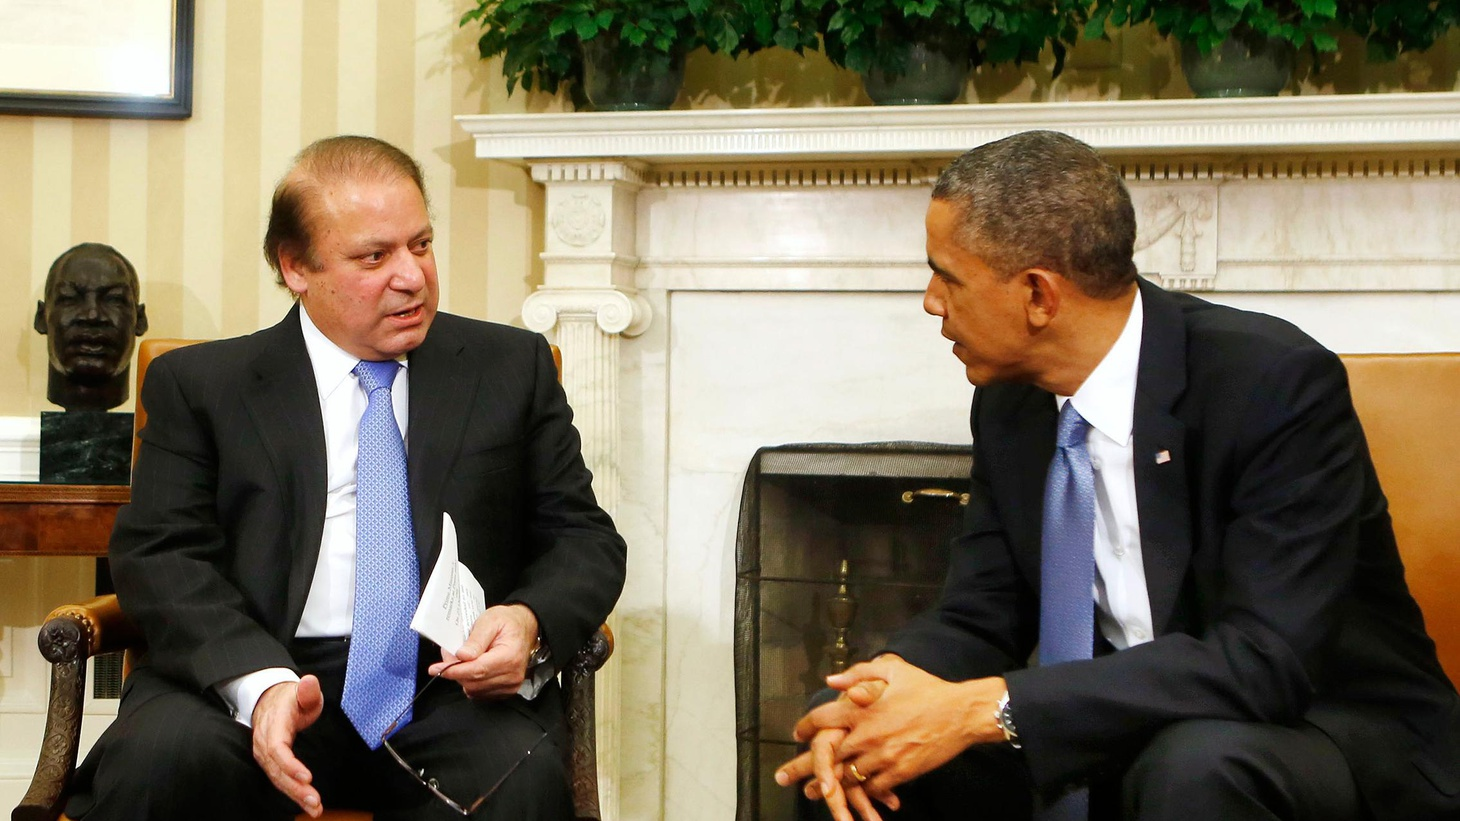 President Obama and Pakistan's new Prime Minister met yesterday in hopes of strengthening an alliance complicated by nuclear weapons, terrorism and a lack of mutual trust.